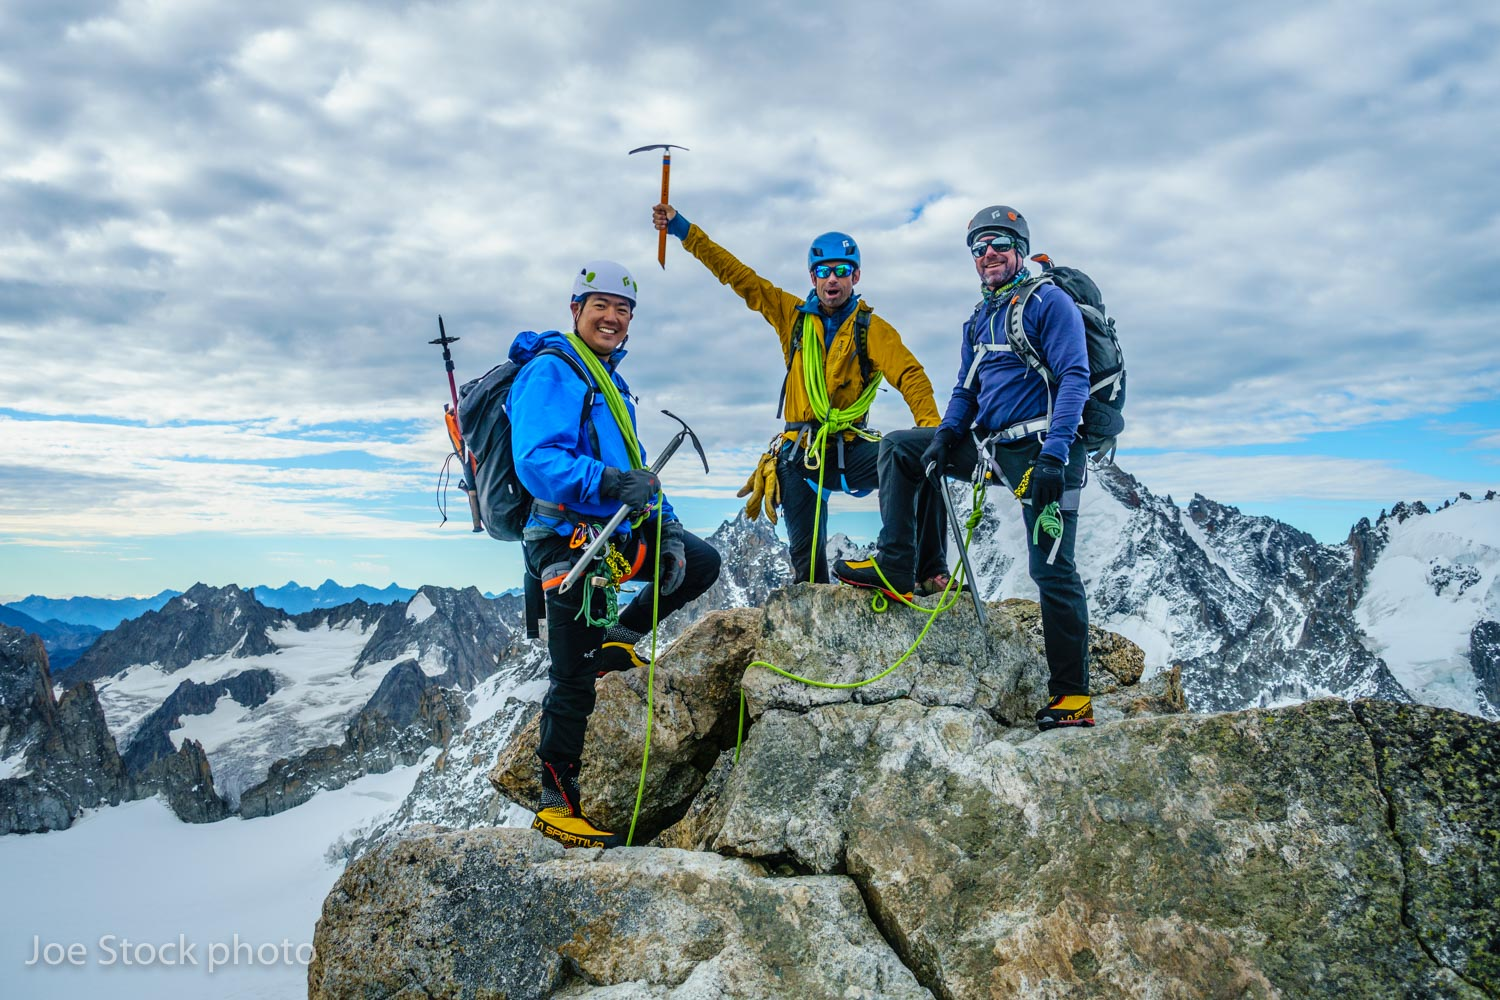 On the summit of Aiguille du Tour on the first Alps trip of the year with Abe Hsieh and Tom Collins. Abe and Tom are from Anchorage. This was part of a week-long  mountaineering course . We battled some weather, but tagged a bunch of summits, skills and wine drinking at the huts.